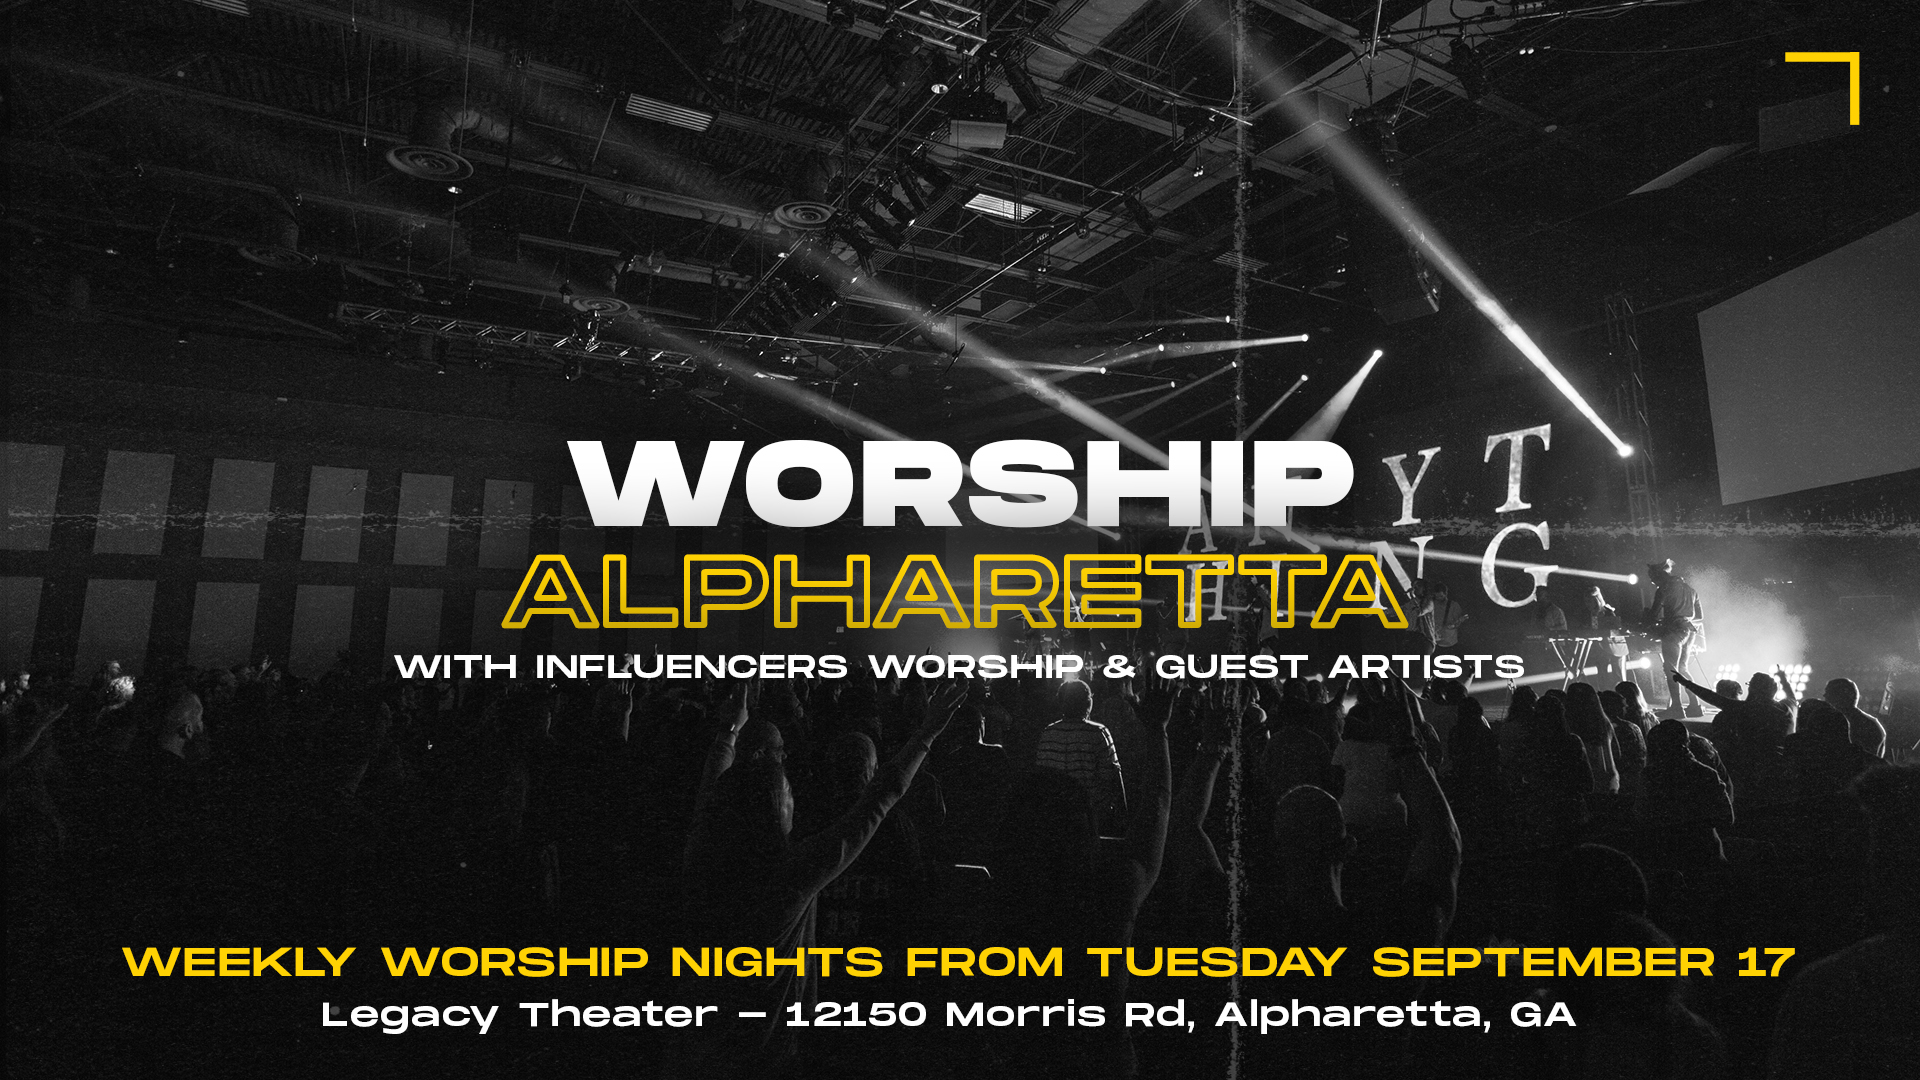 20190825 - Worship Alpharetta Promo updated.jpg